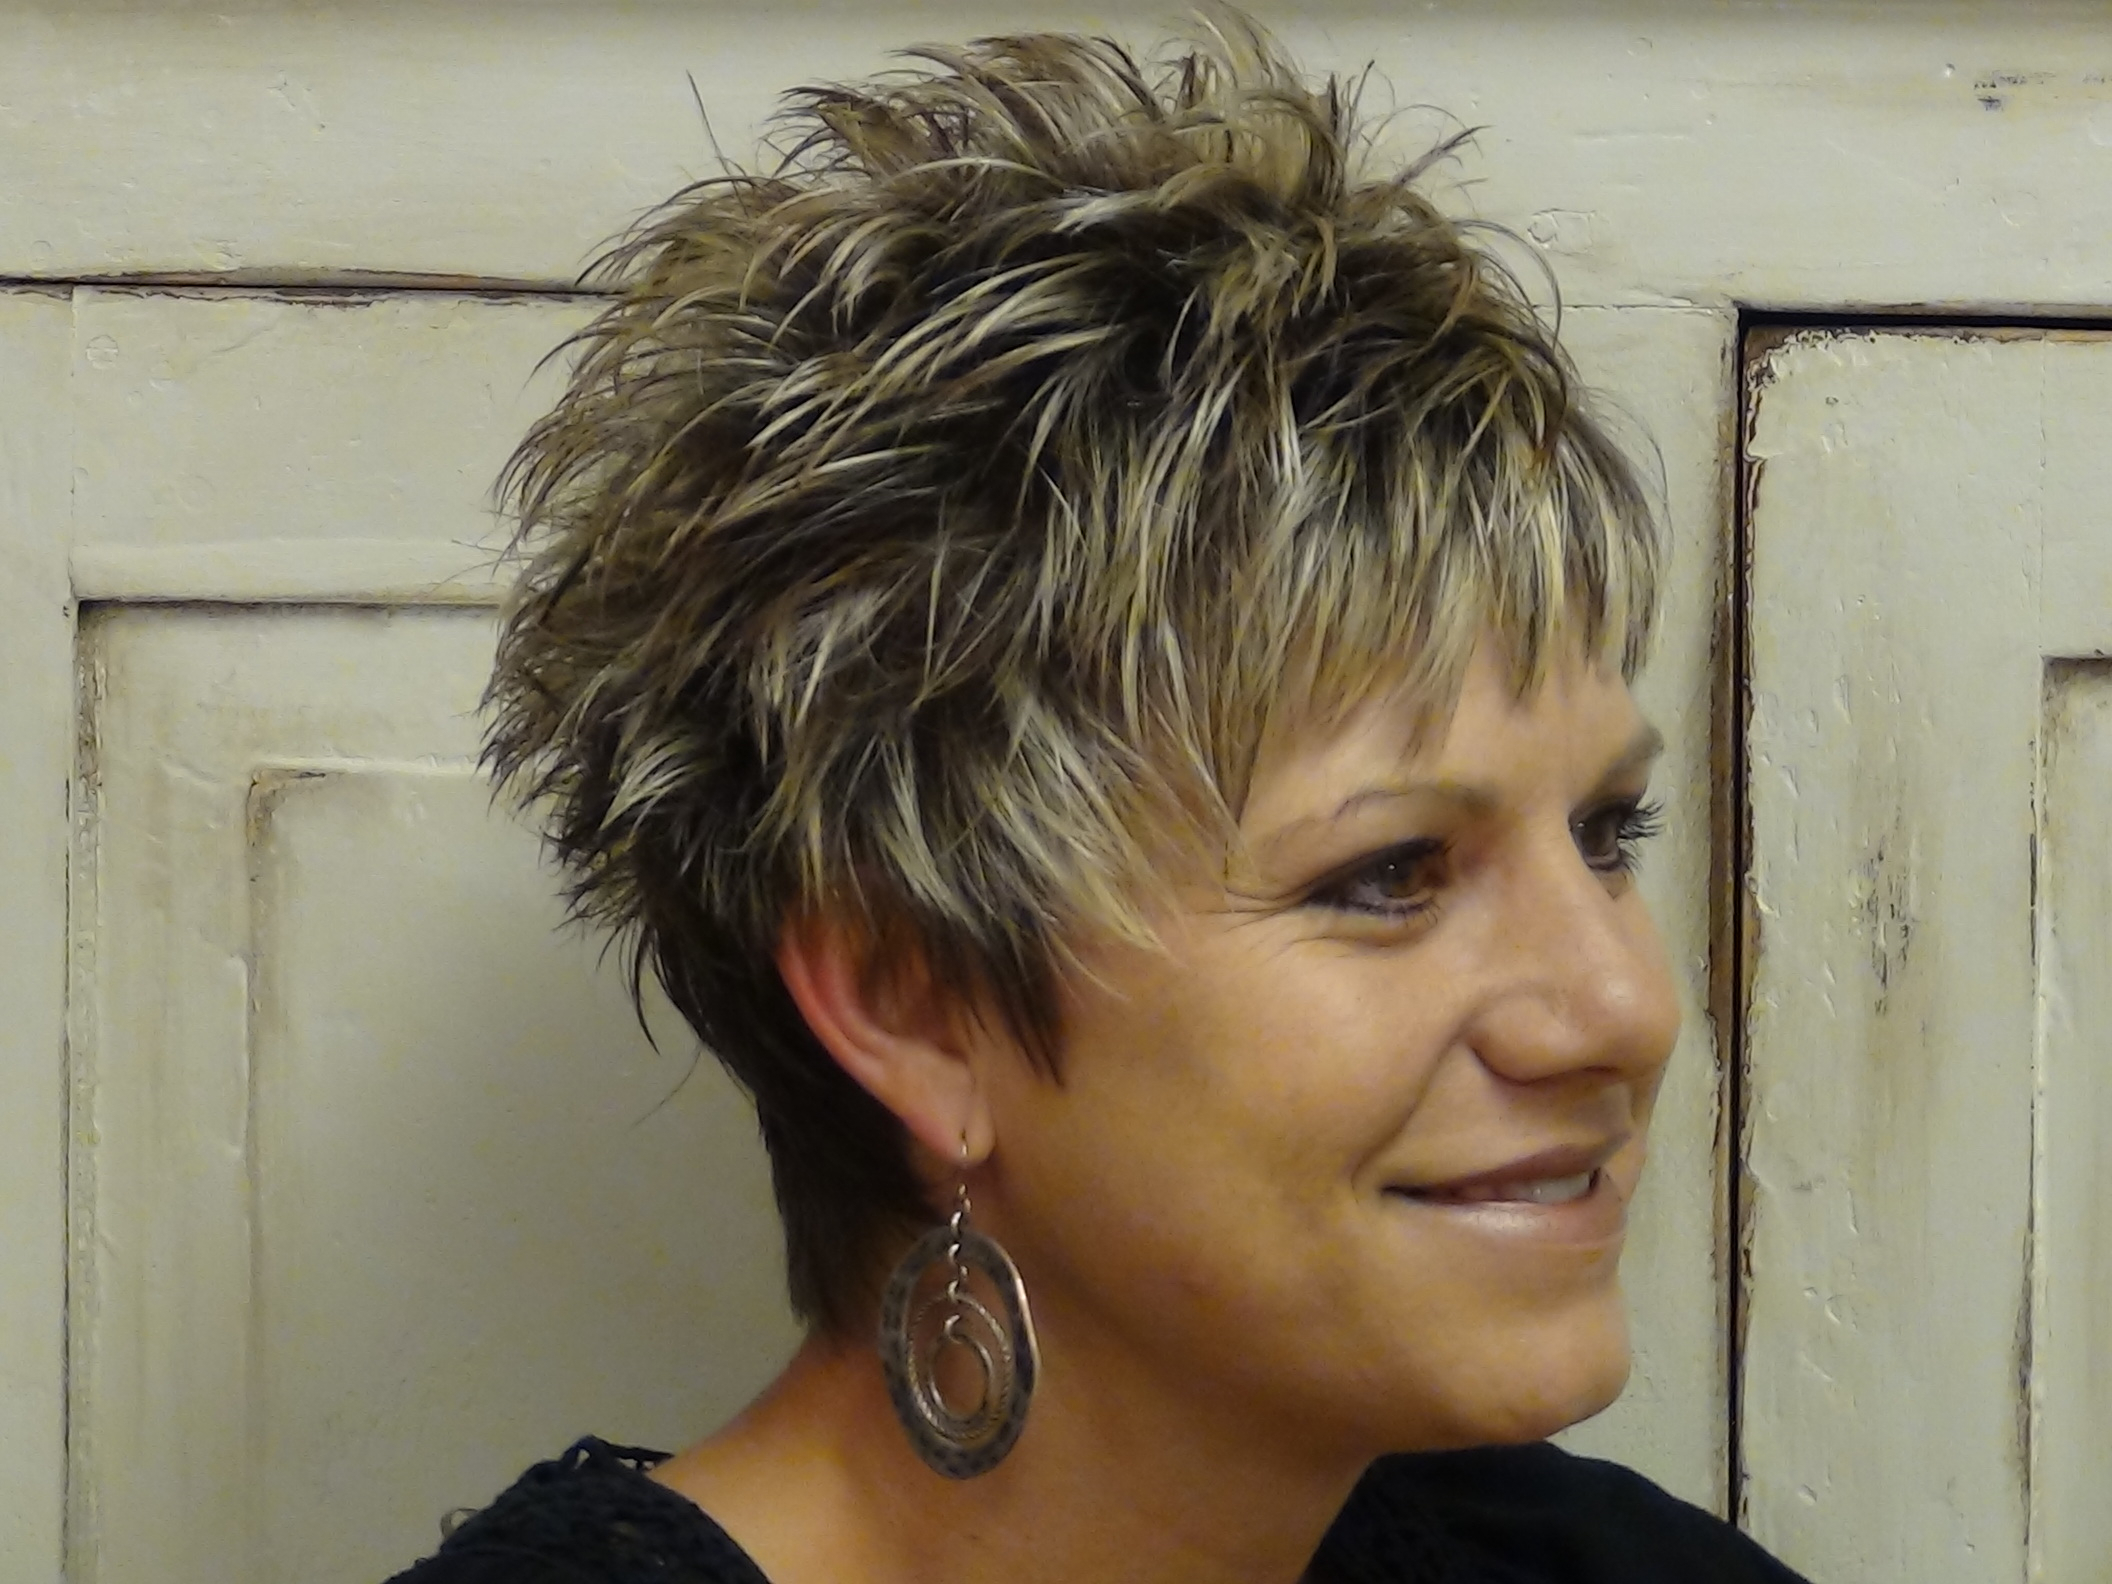 Short Hairstyles For 50 Year Old – Hairstyle For Women & Man Regarding Short Hairstyle For 50 Year Old Woman (View 6 of 25)